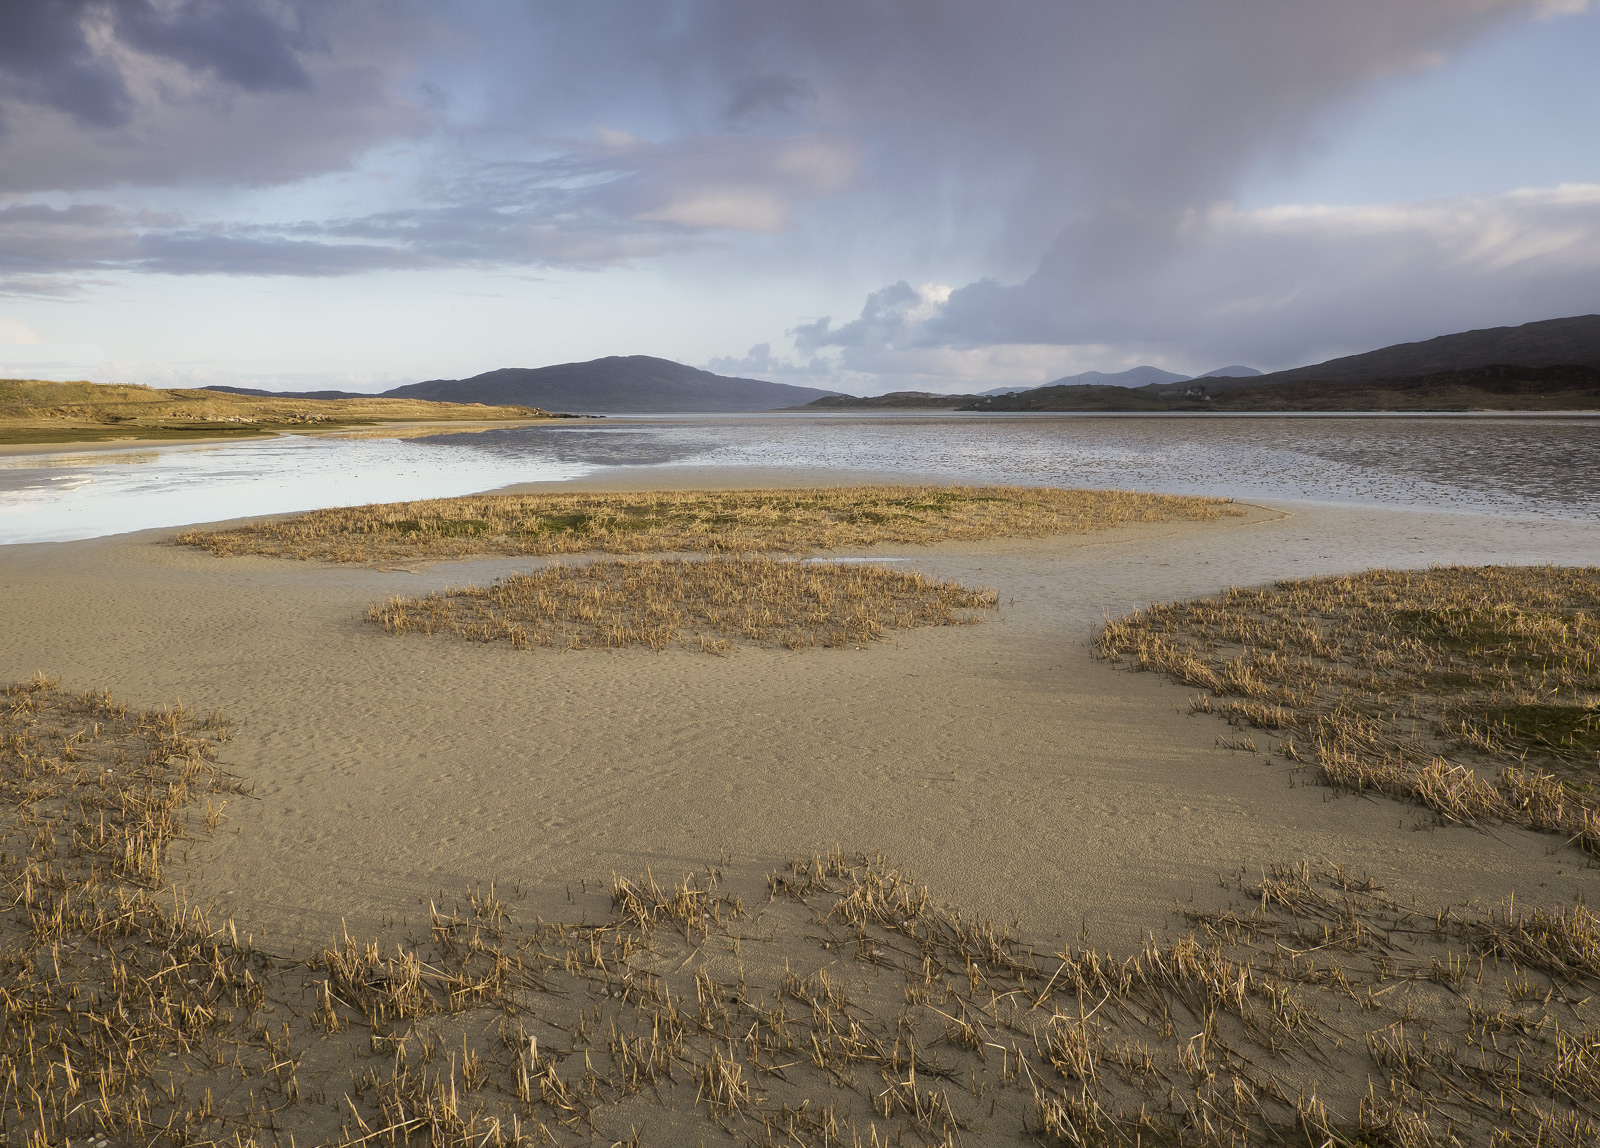 The soft light of a gentle dawn illuminates the sand flats in Luskentyre's massive estuary on a slowly rising tide. Soon...